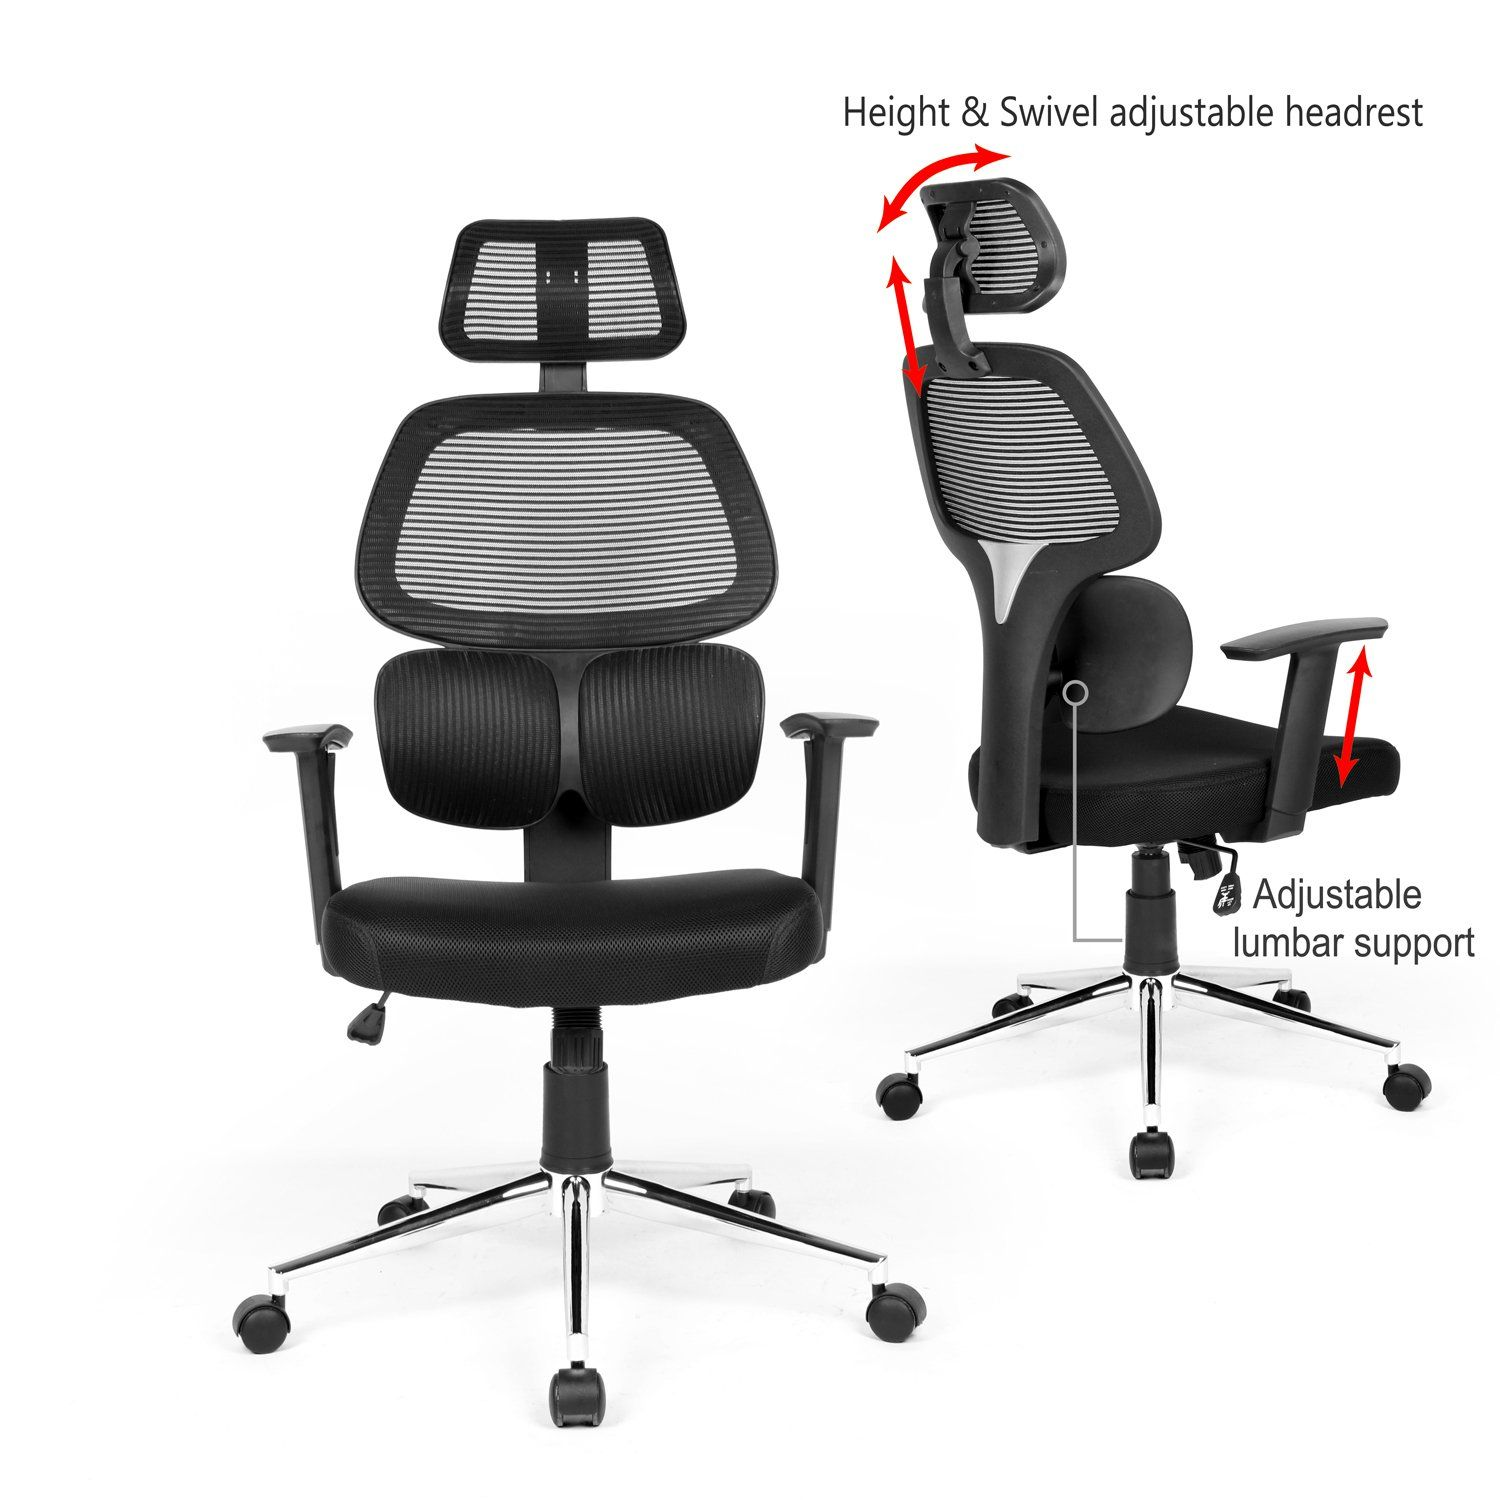 Ergonomic Mesh fice Chair High Back Swiver puter Desk Task